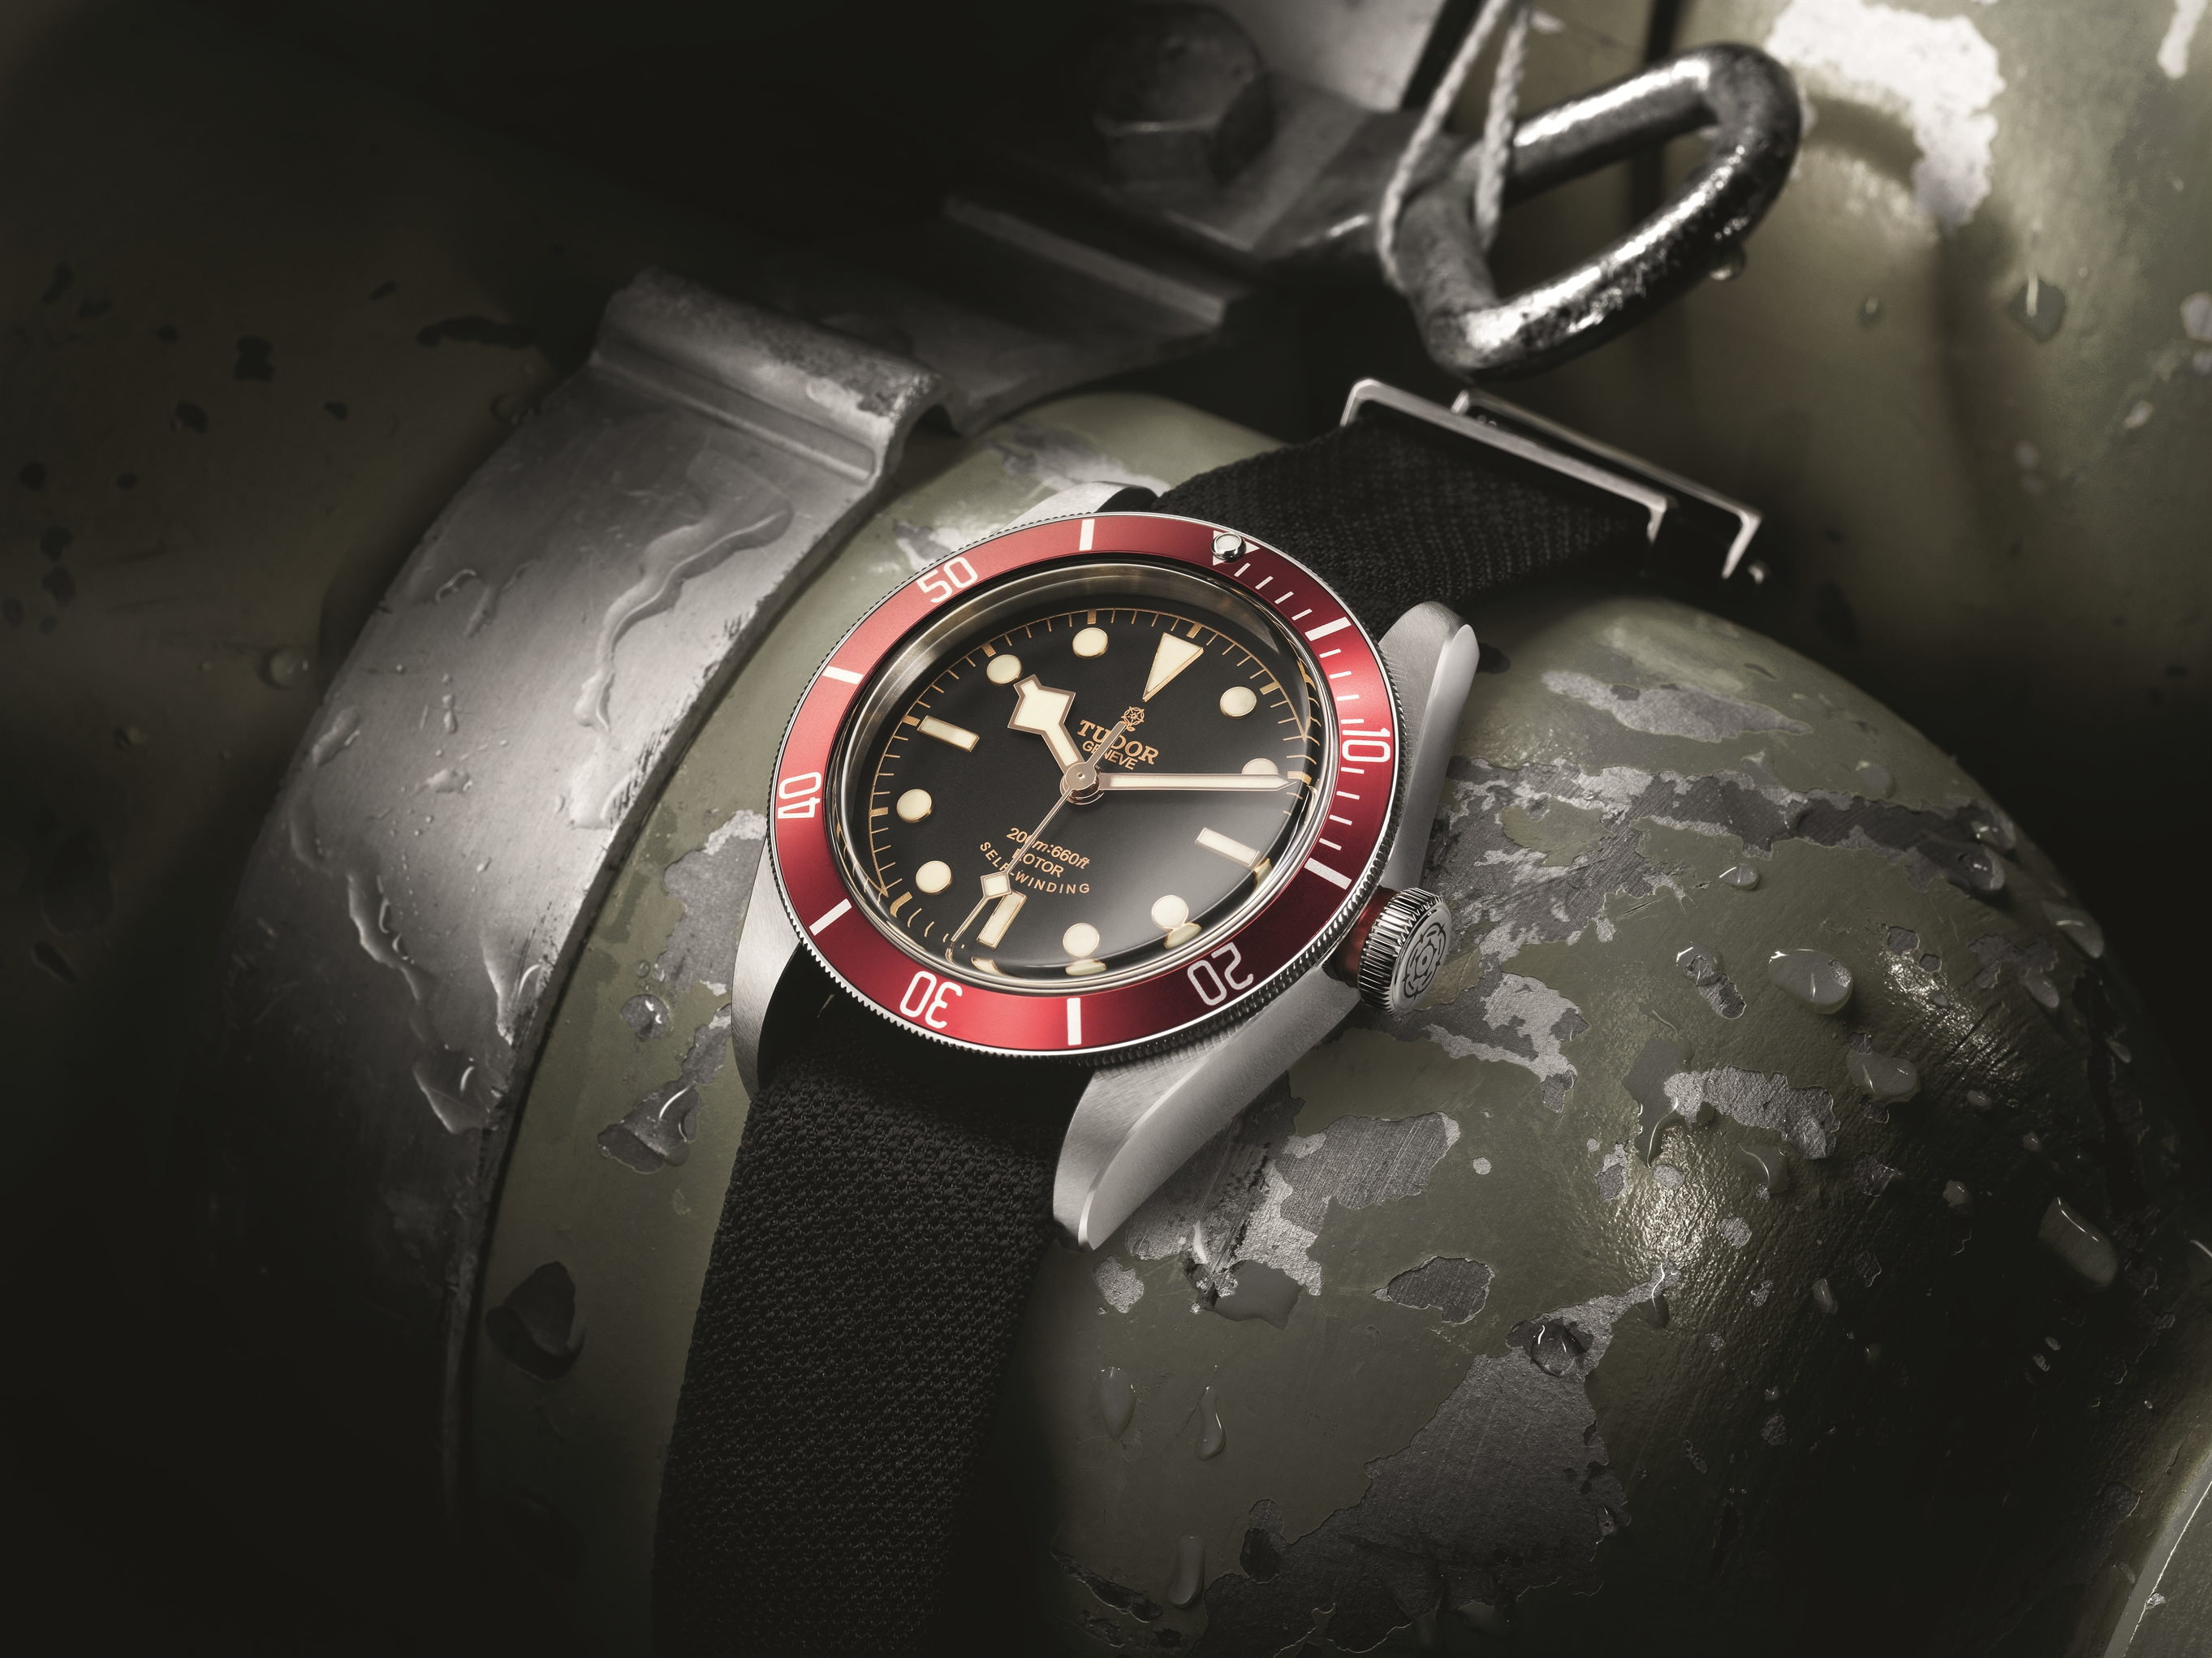 Back in the U.S.A - Tudor Watches